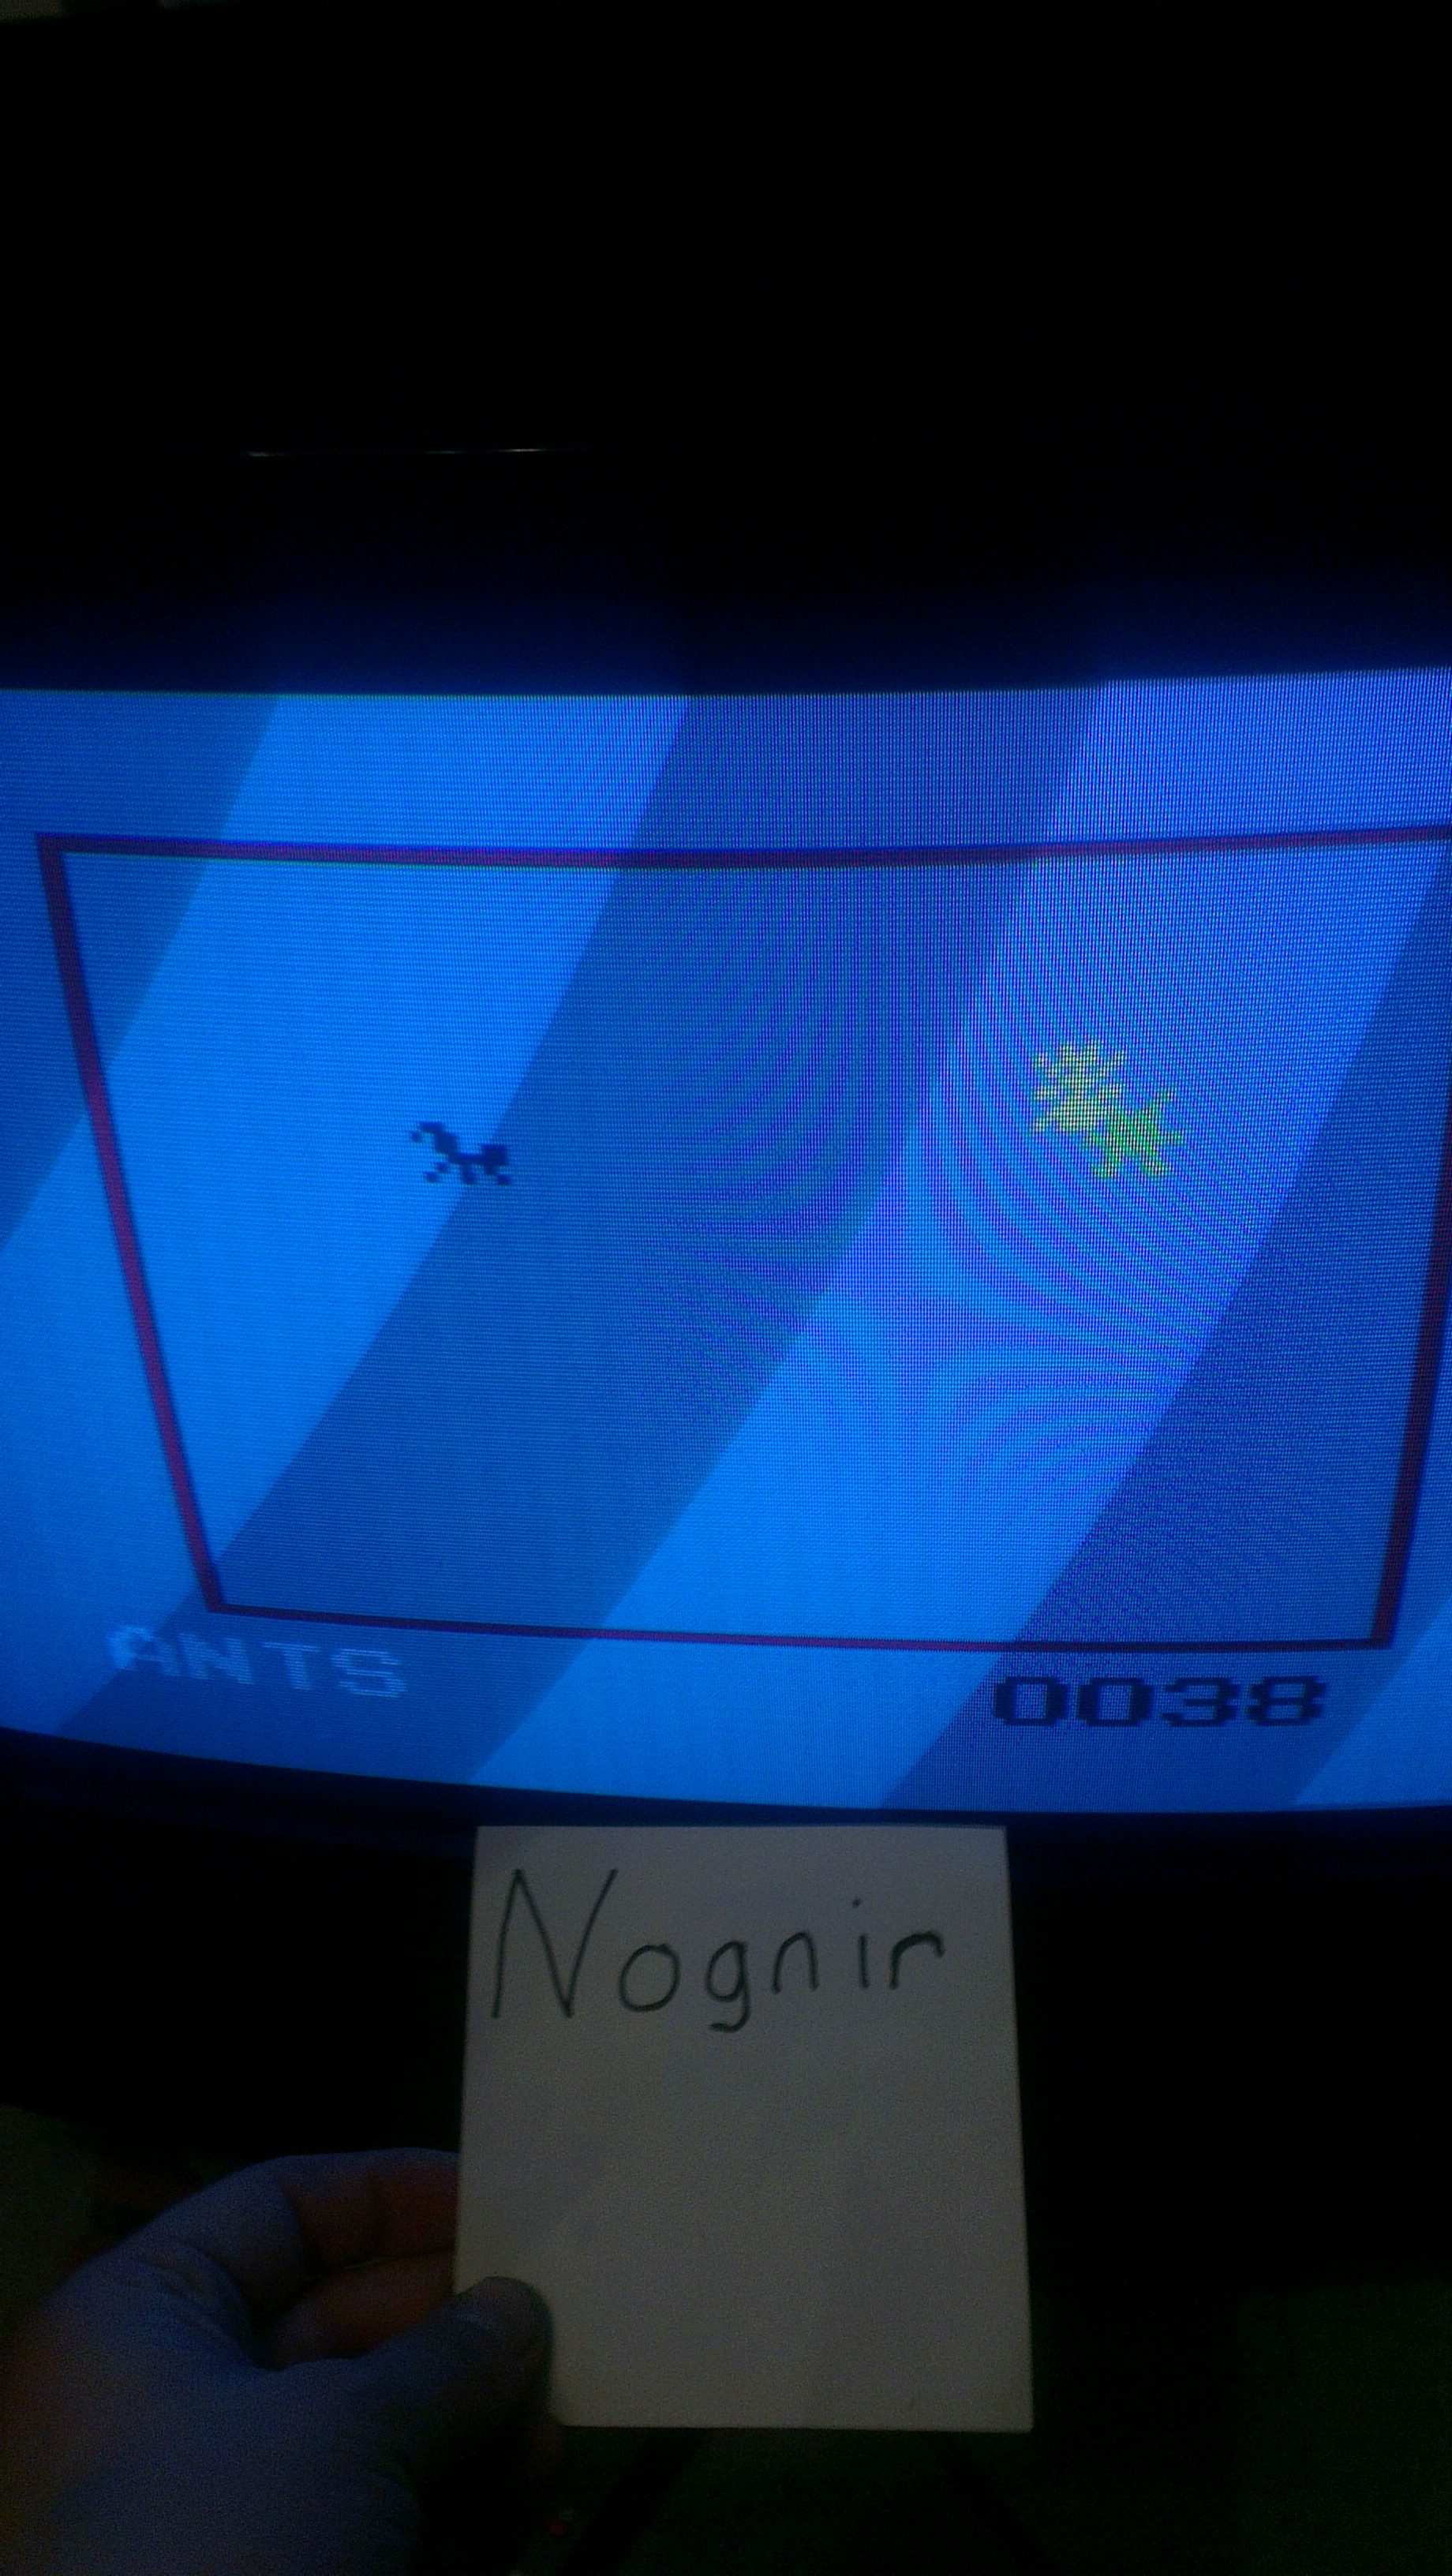 Nognir: Ants (Odyssey 2 / Videopac) 38 points on 2014-04-11 19:11:07